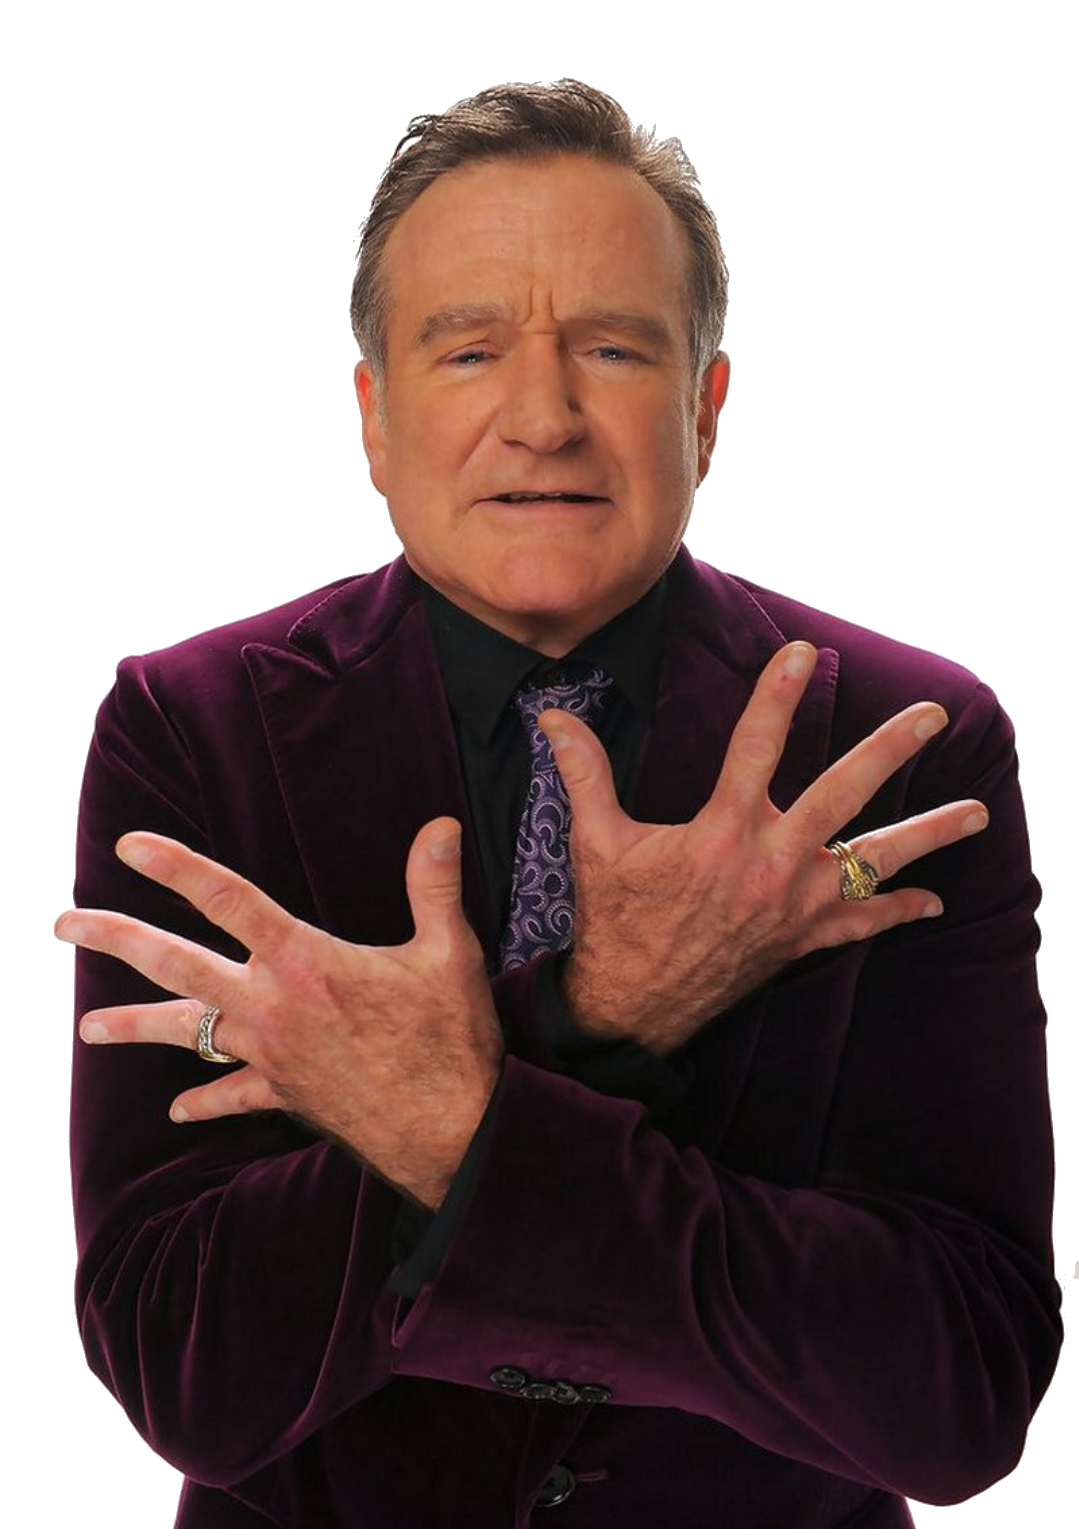 robin williams png